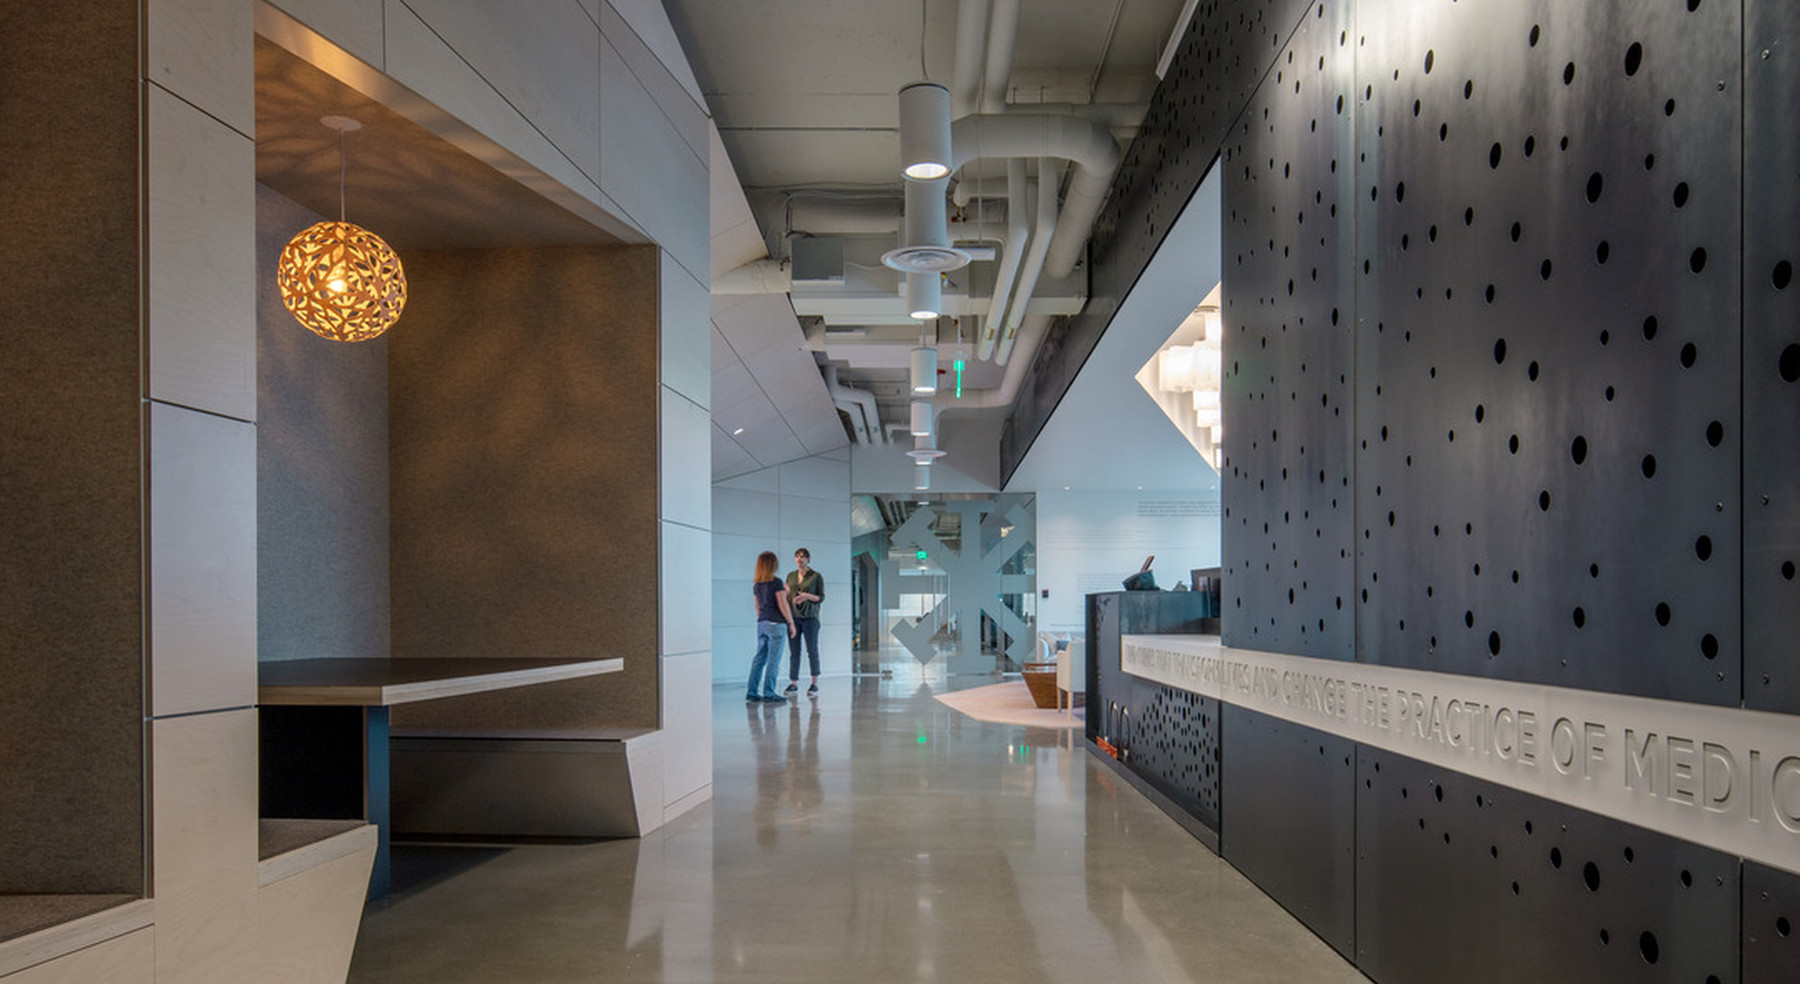 Juno Therapeutics, a Celgene Company - Scientific Workplace and Research Center